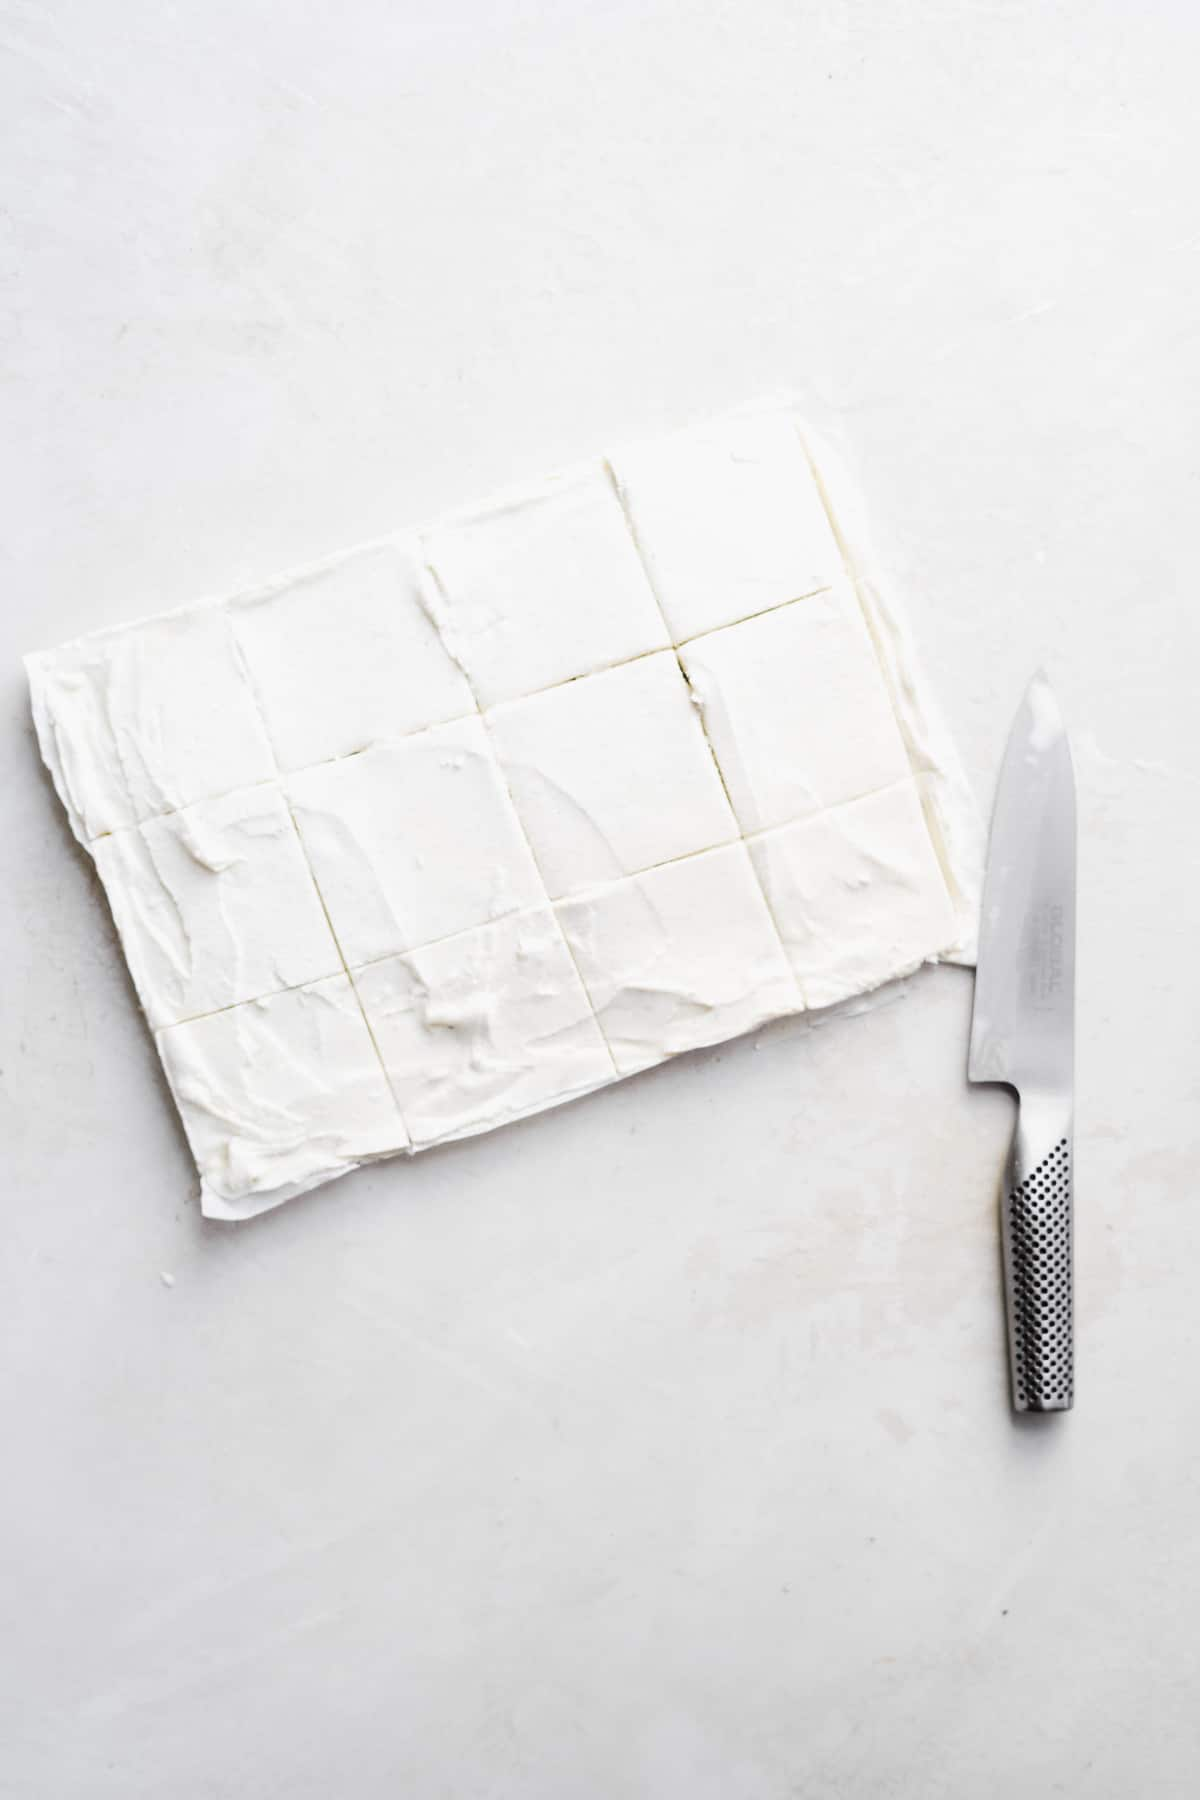 Rectangular piece of ice cream on a white surface sliced into squares with a knife.